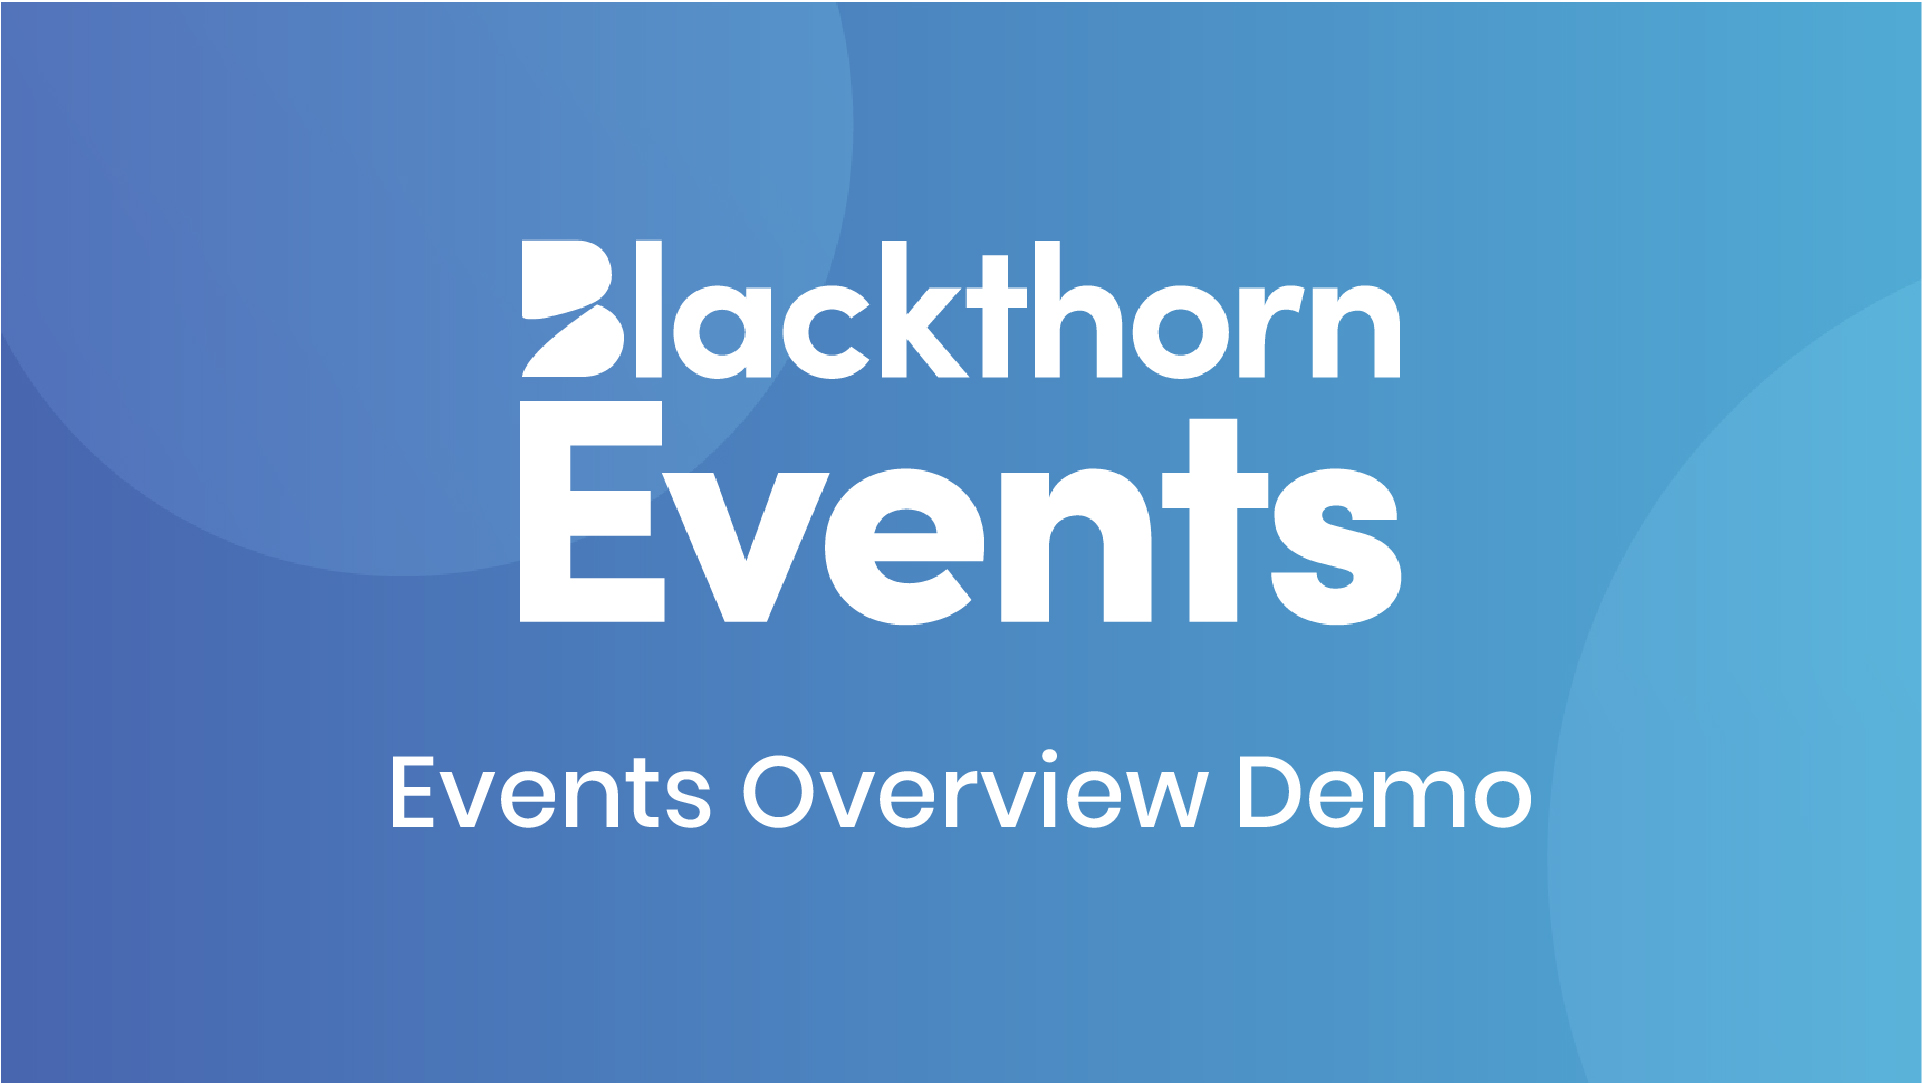 Blackthorn Events Overview Demo